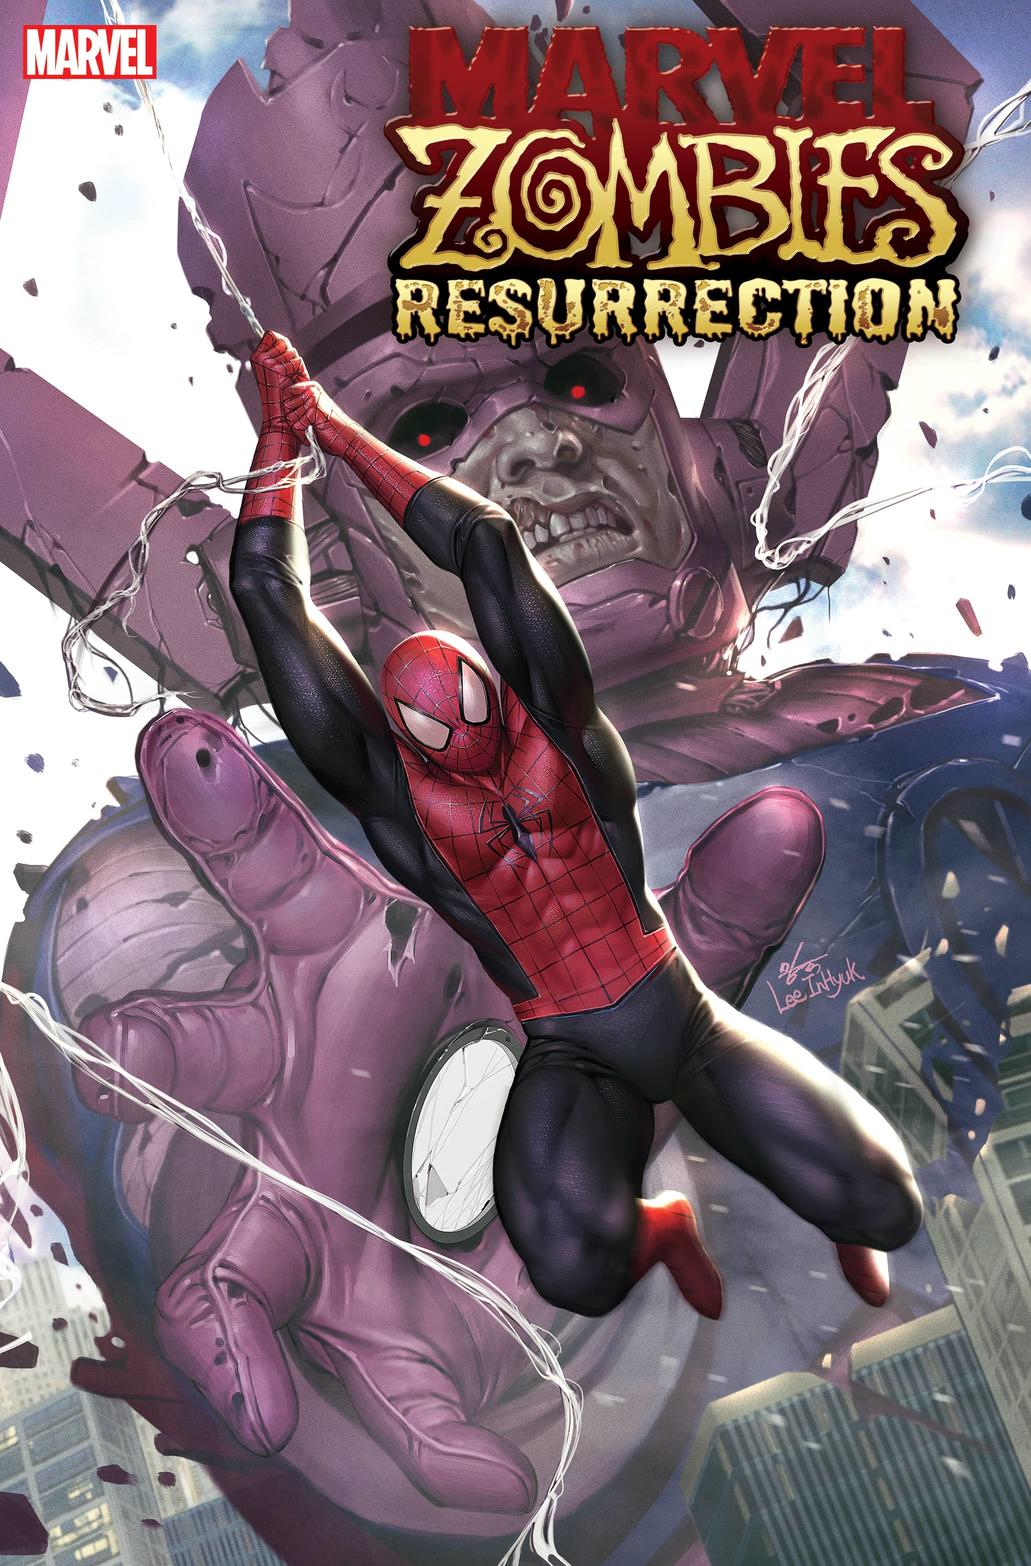 MARVEL ZOMBIES: RESURRECTION #1 cover by In-Hyuk Lee